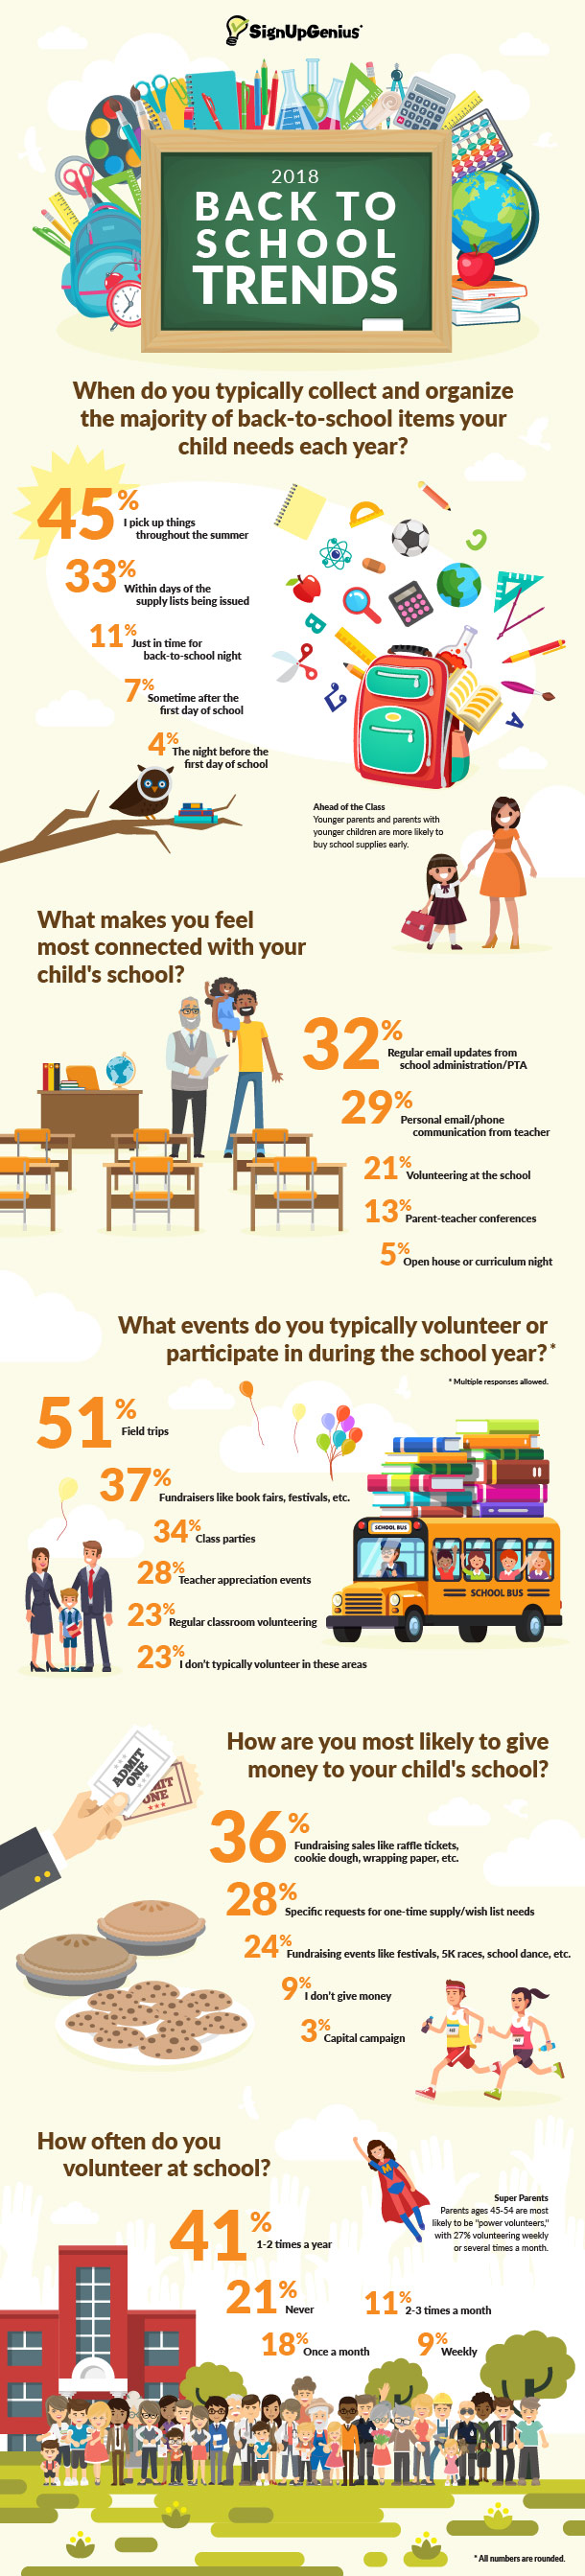 Back to School 2018: Organizing and Volunteer Trends